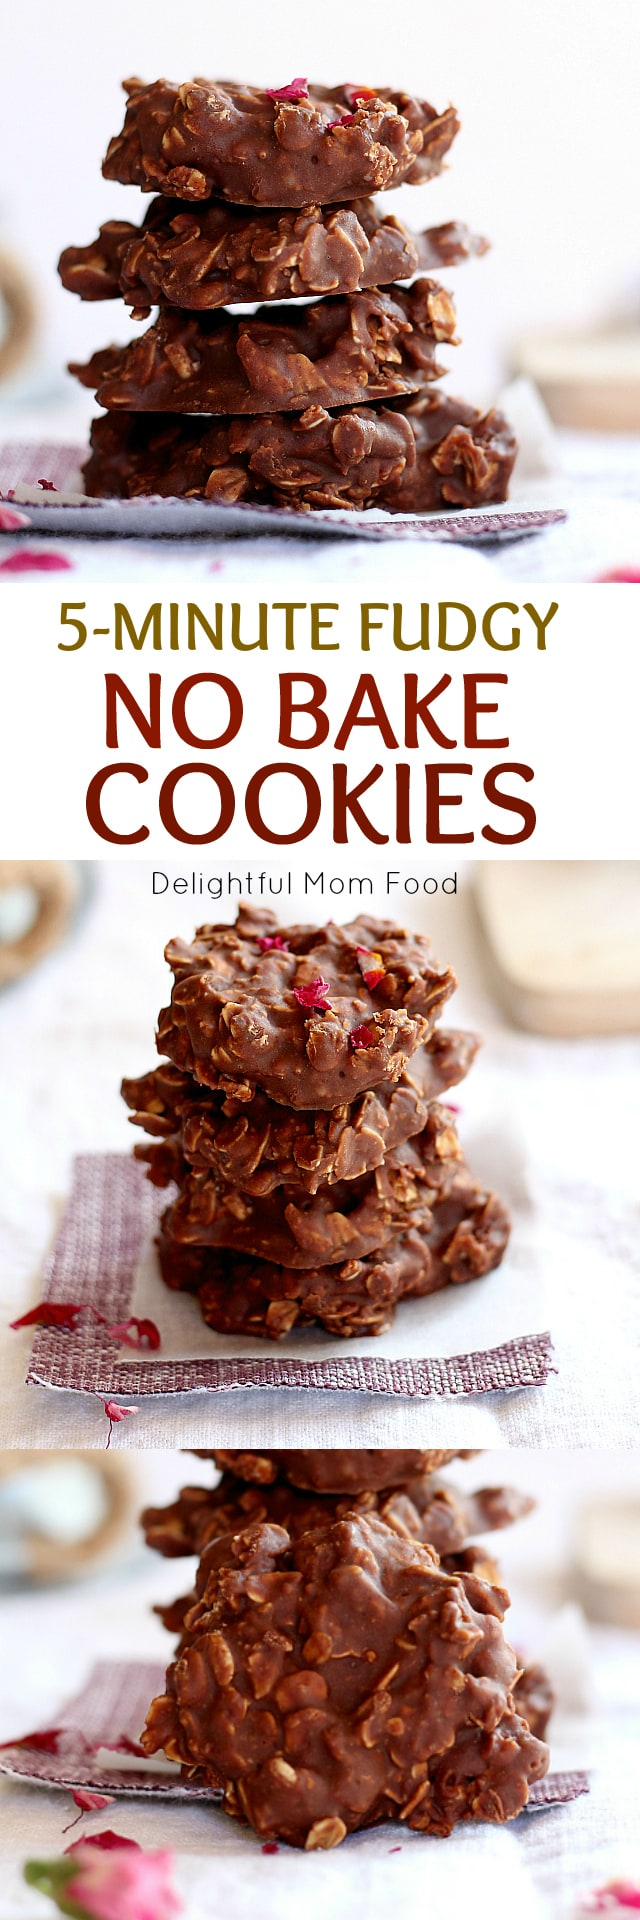 Fudgy Chocolate Peanut Butter Oatmeal No Bake Cookies | Delightful Mo